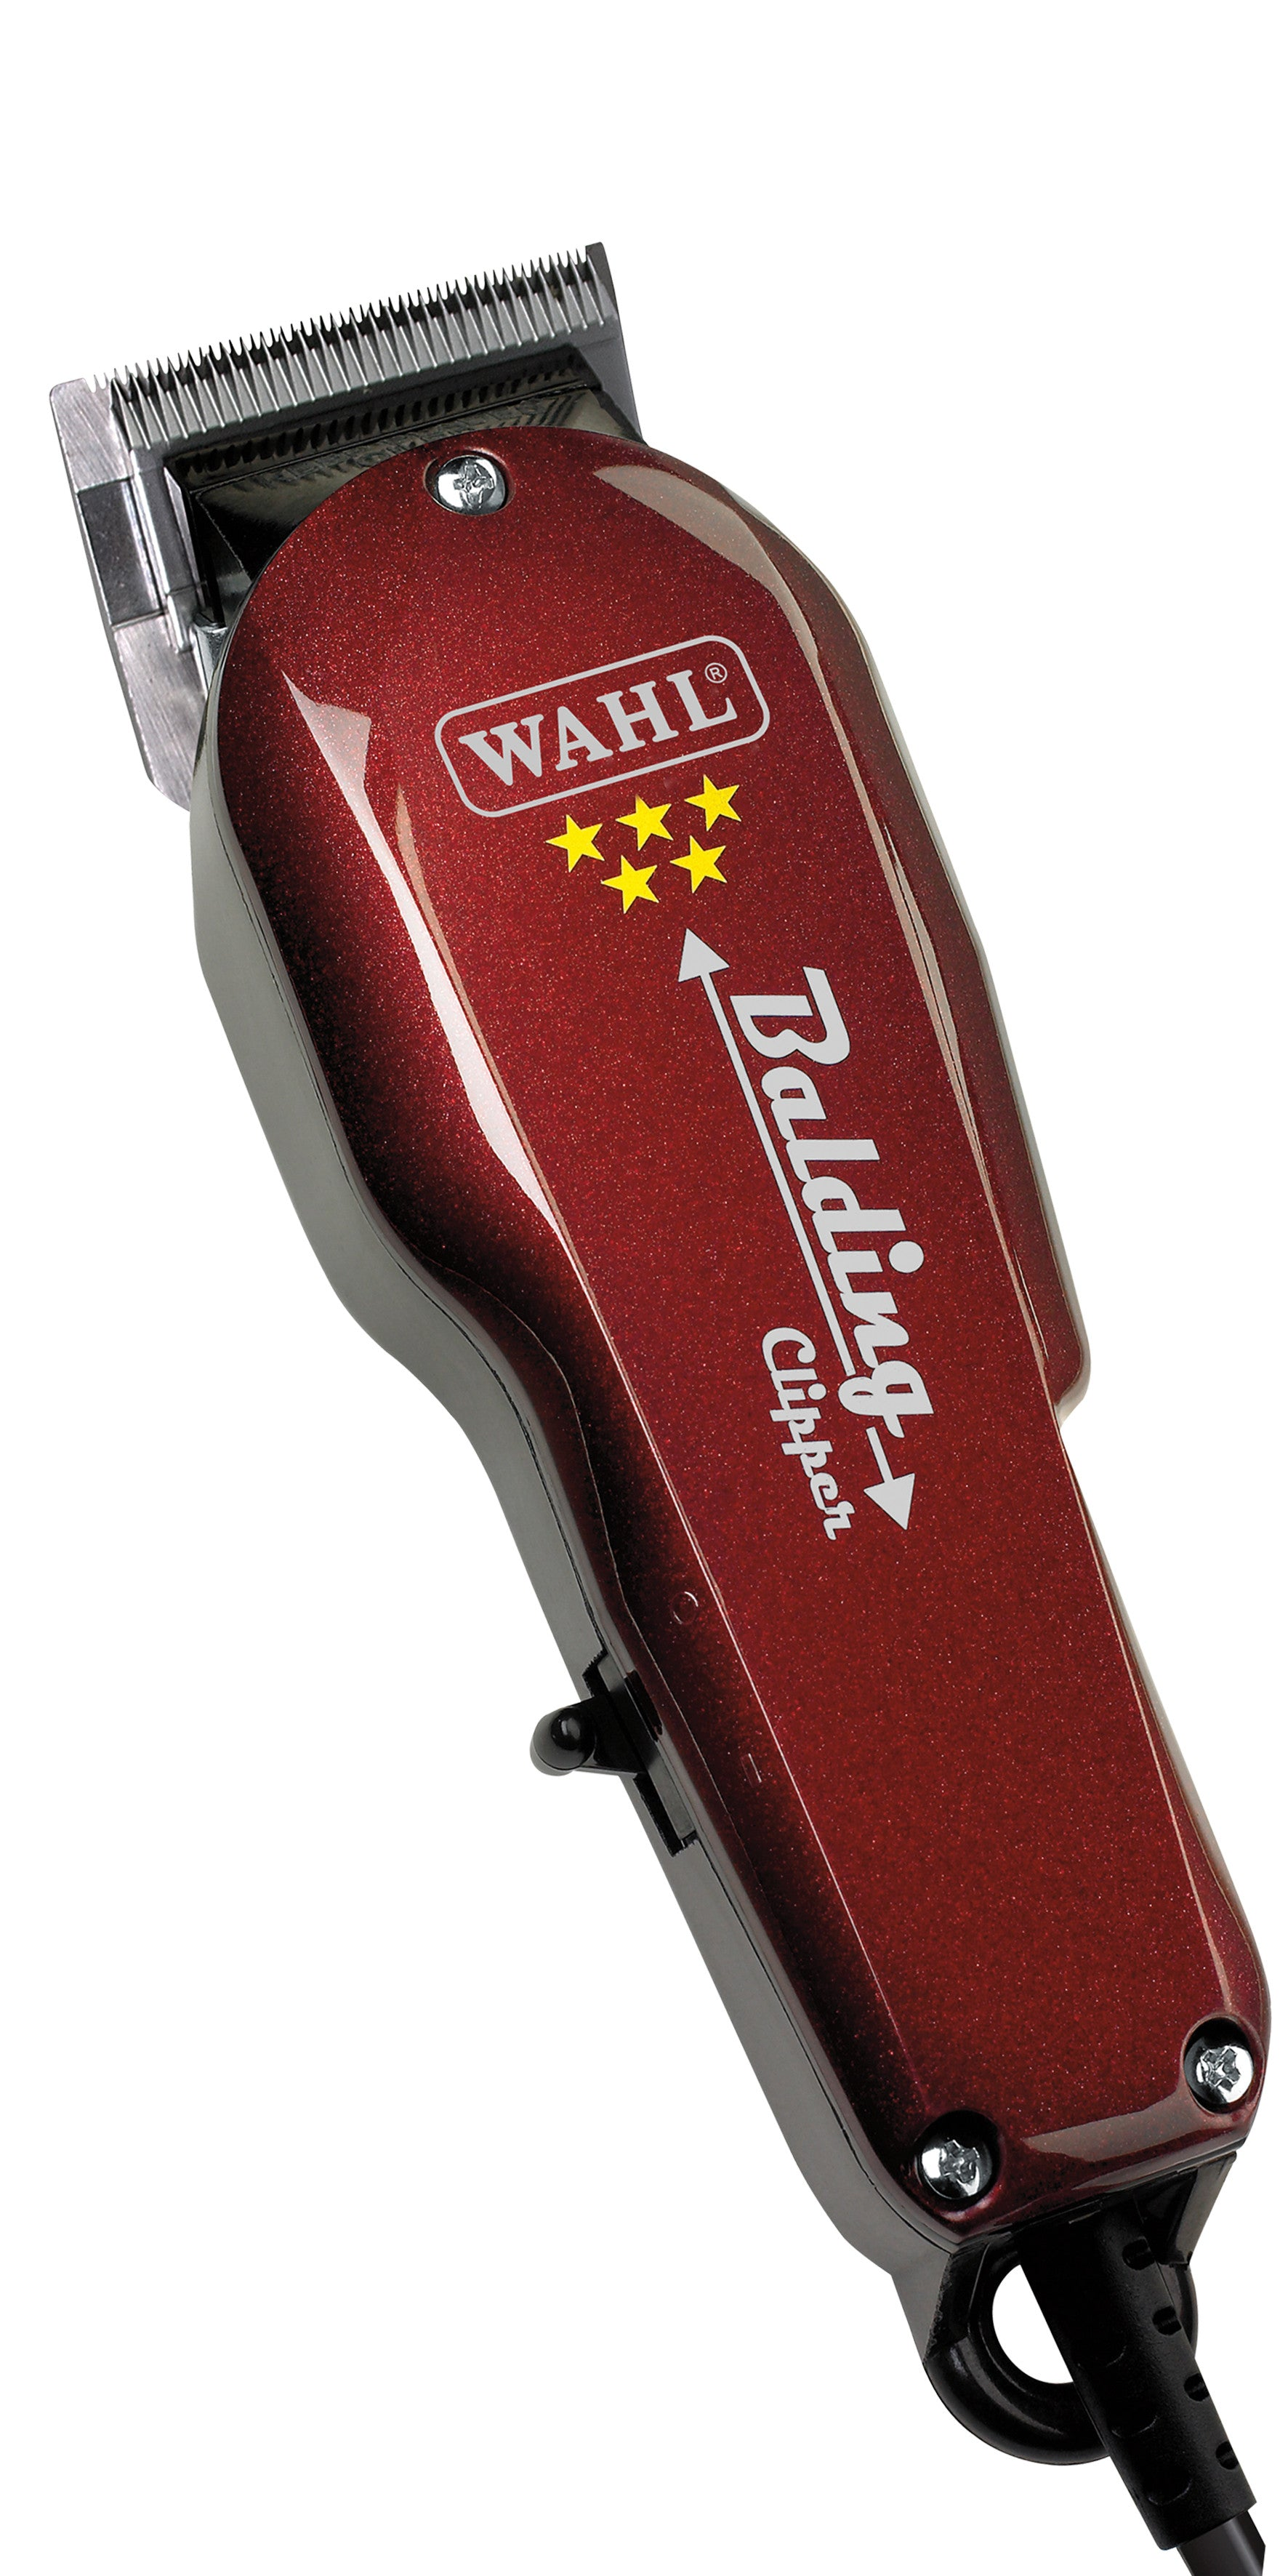 Wahl Balding 5 Star Clipper